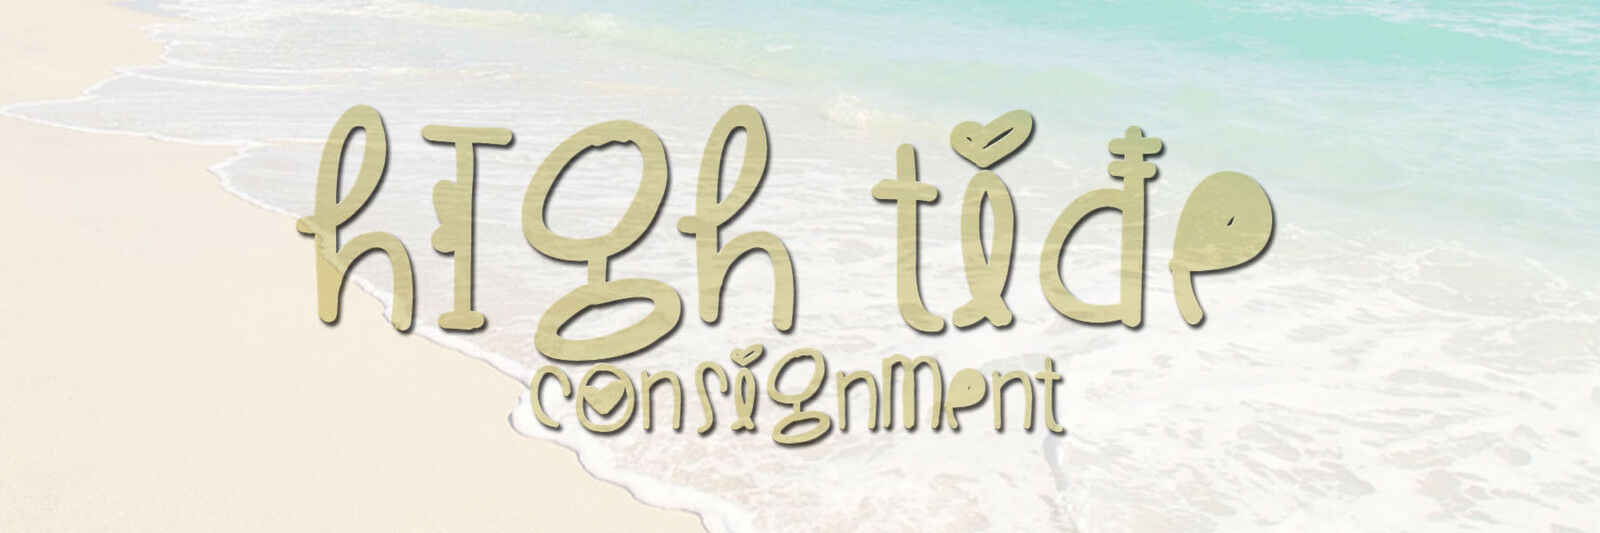 HighTideConsignment